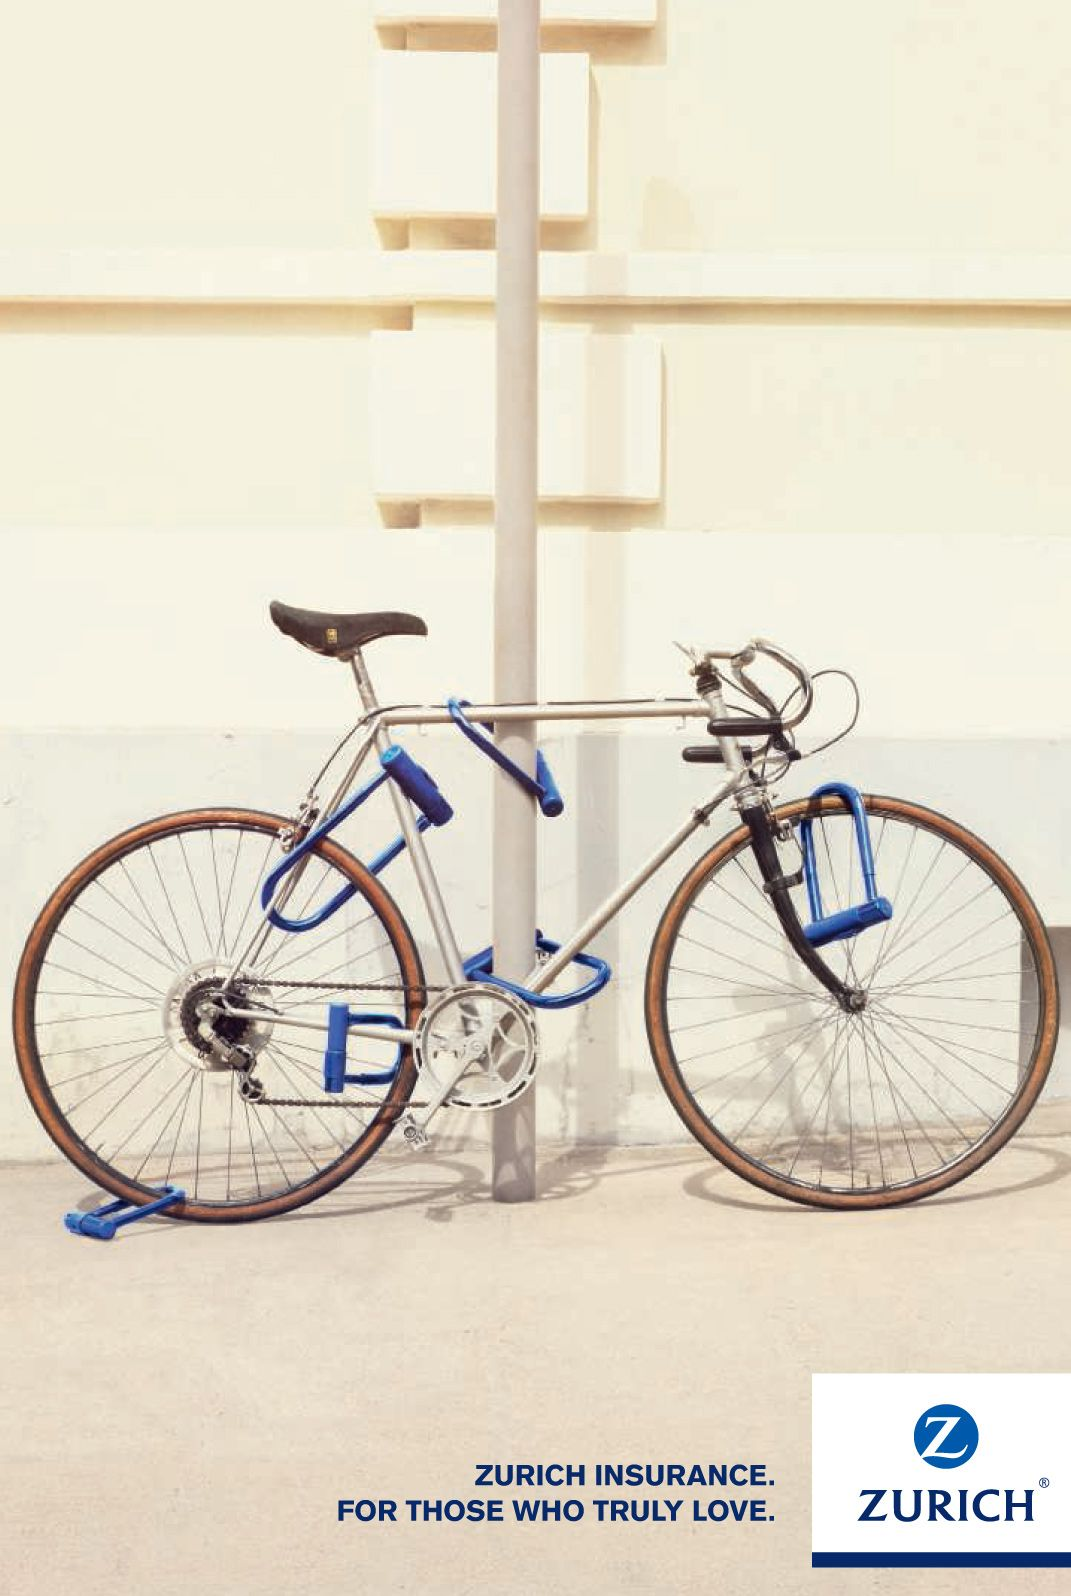 Love Bikes Print Ads Zurich Insurance Ads